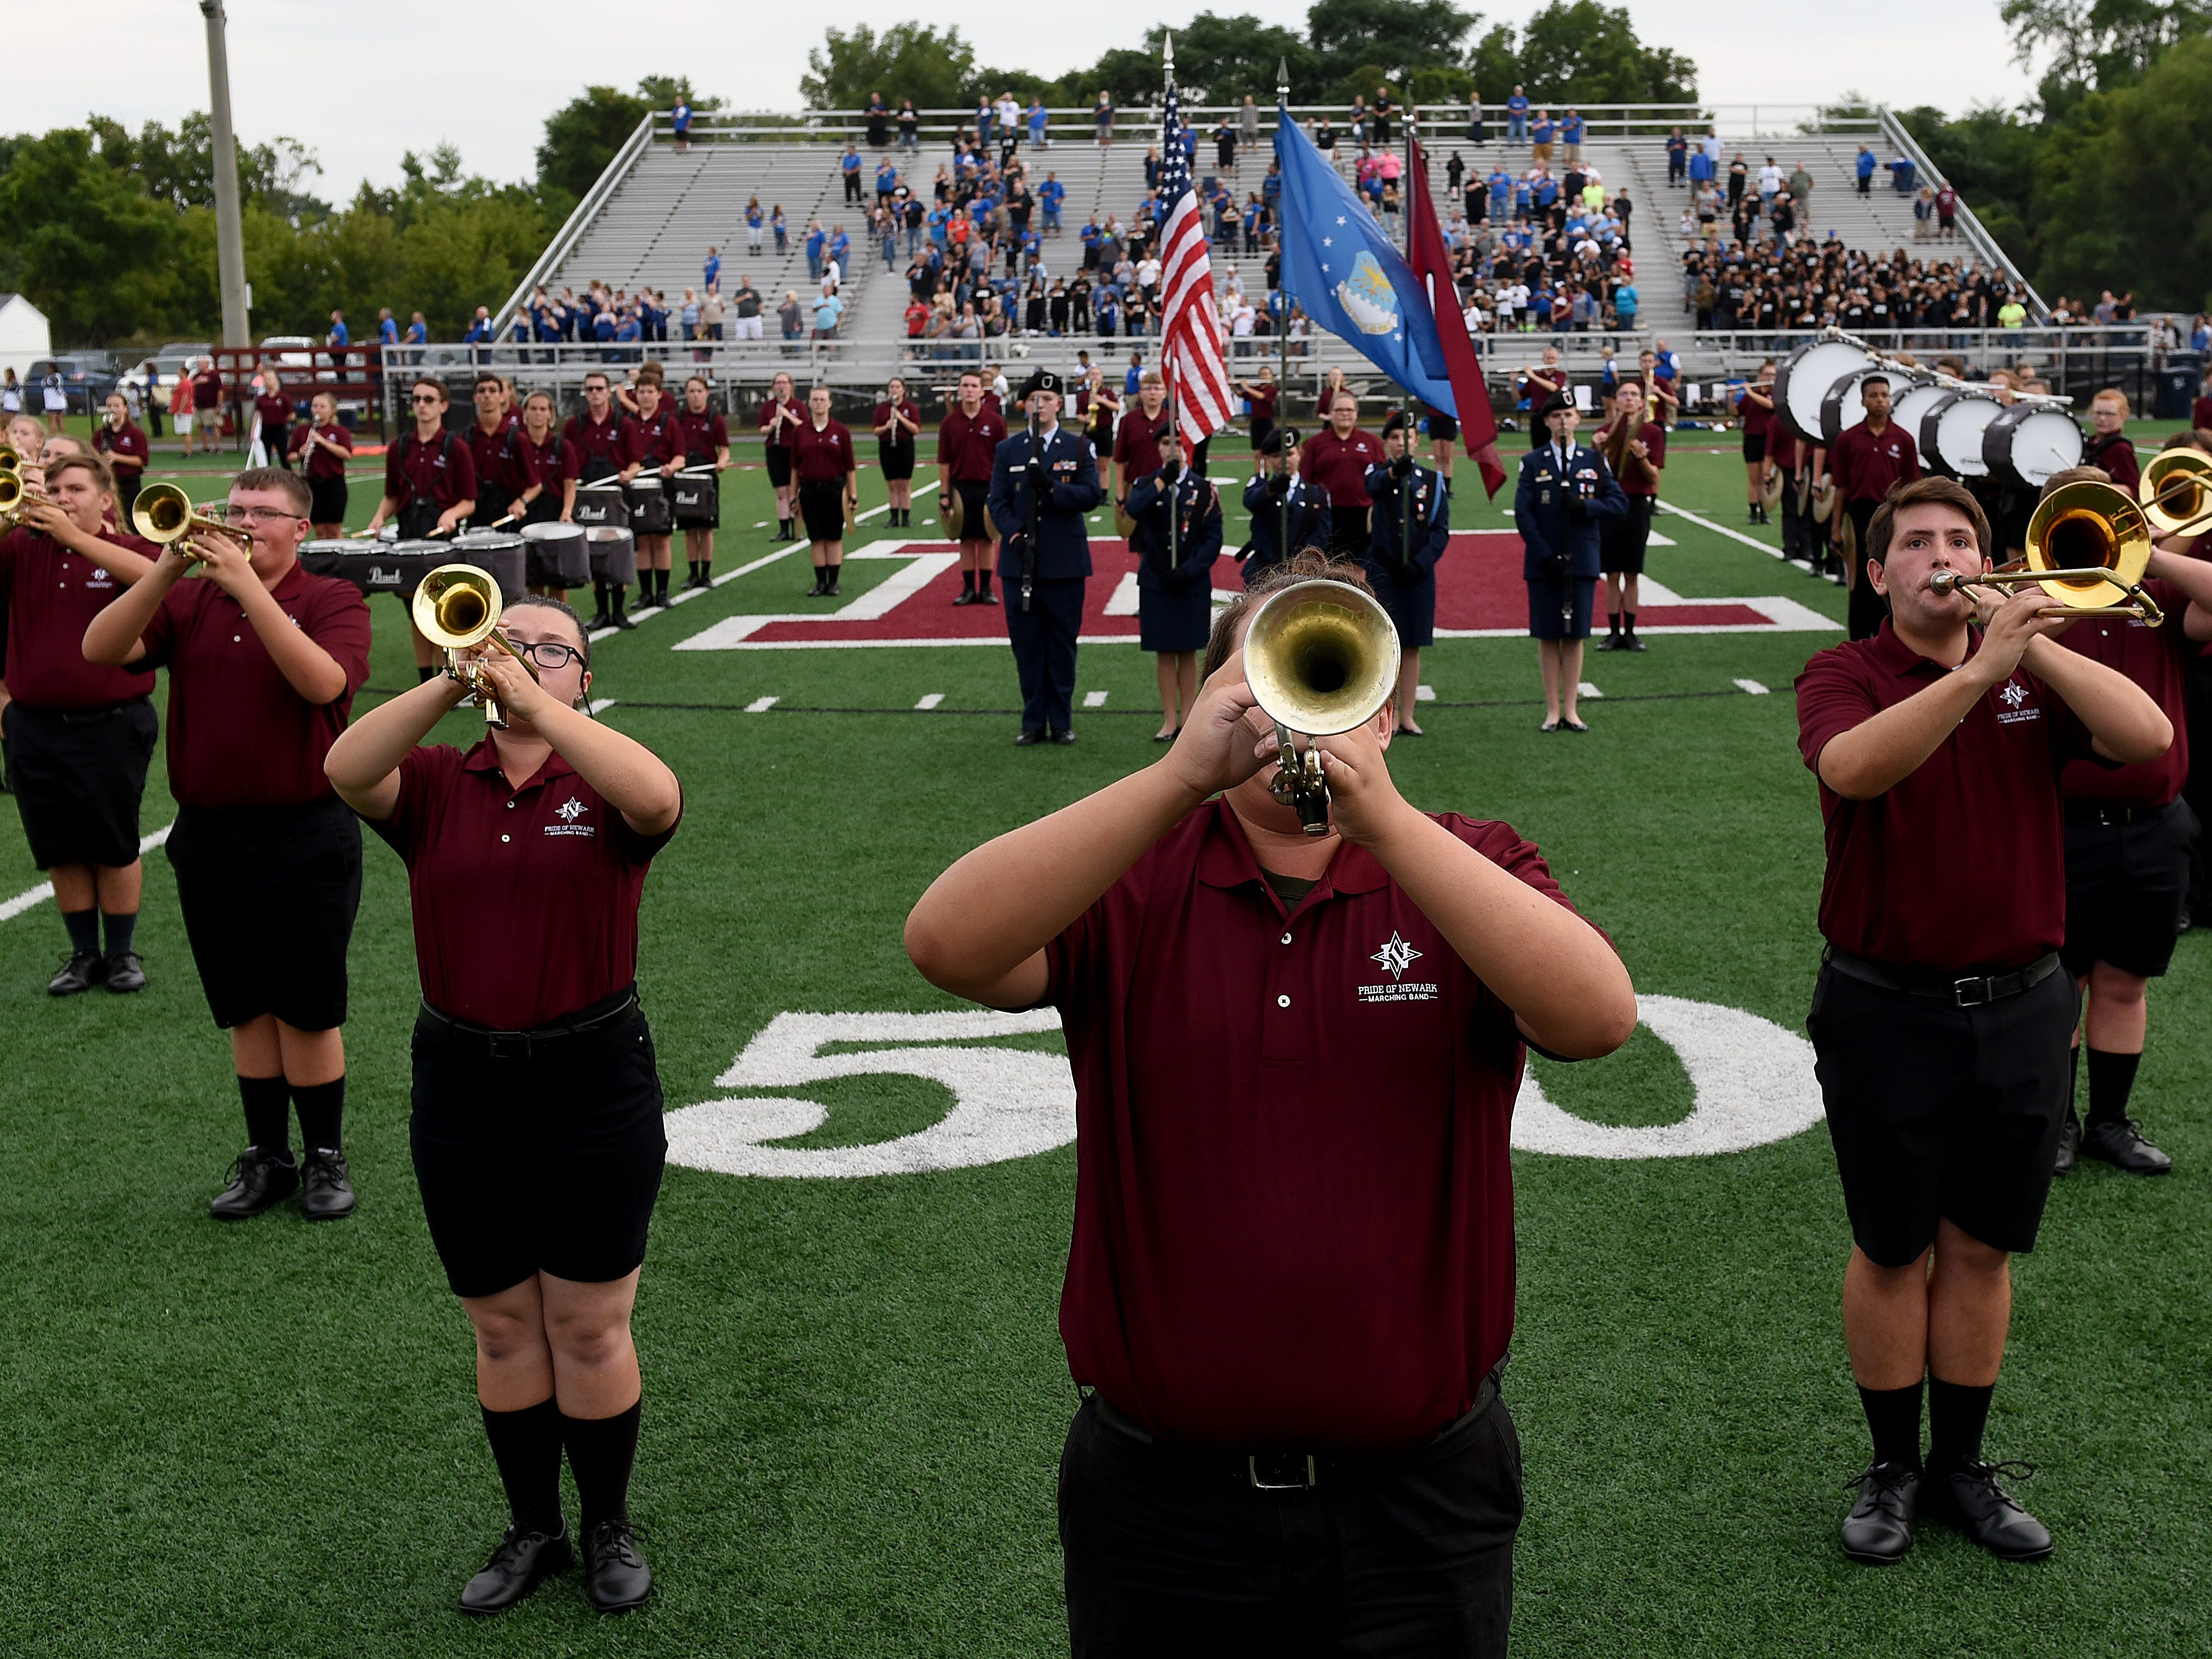 The Newark High School marching band performs the national anthem as Air Force Junior ROTC presents the colors before the start of the first football game of the 2018 season on Friday, Aug. 24, 2018 at White Field.